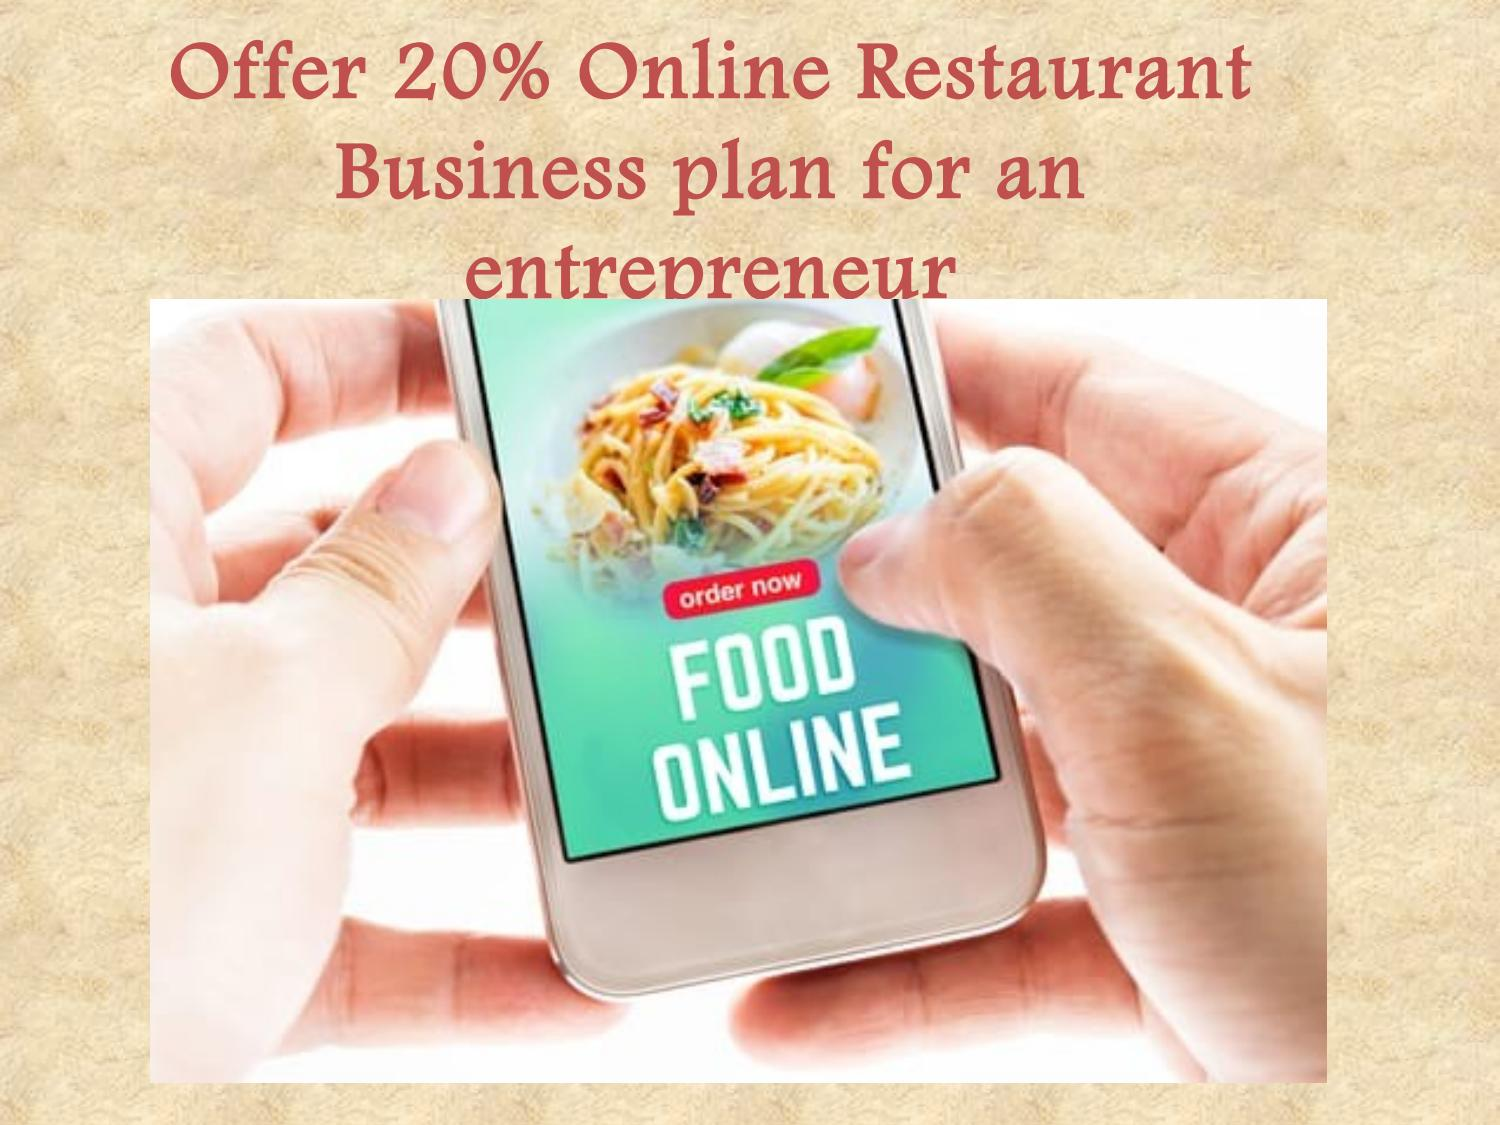 Online restaurant business plan professional dissertation results writing service for university